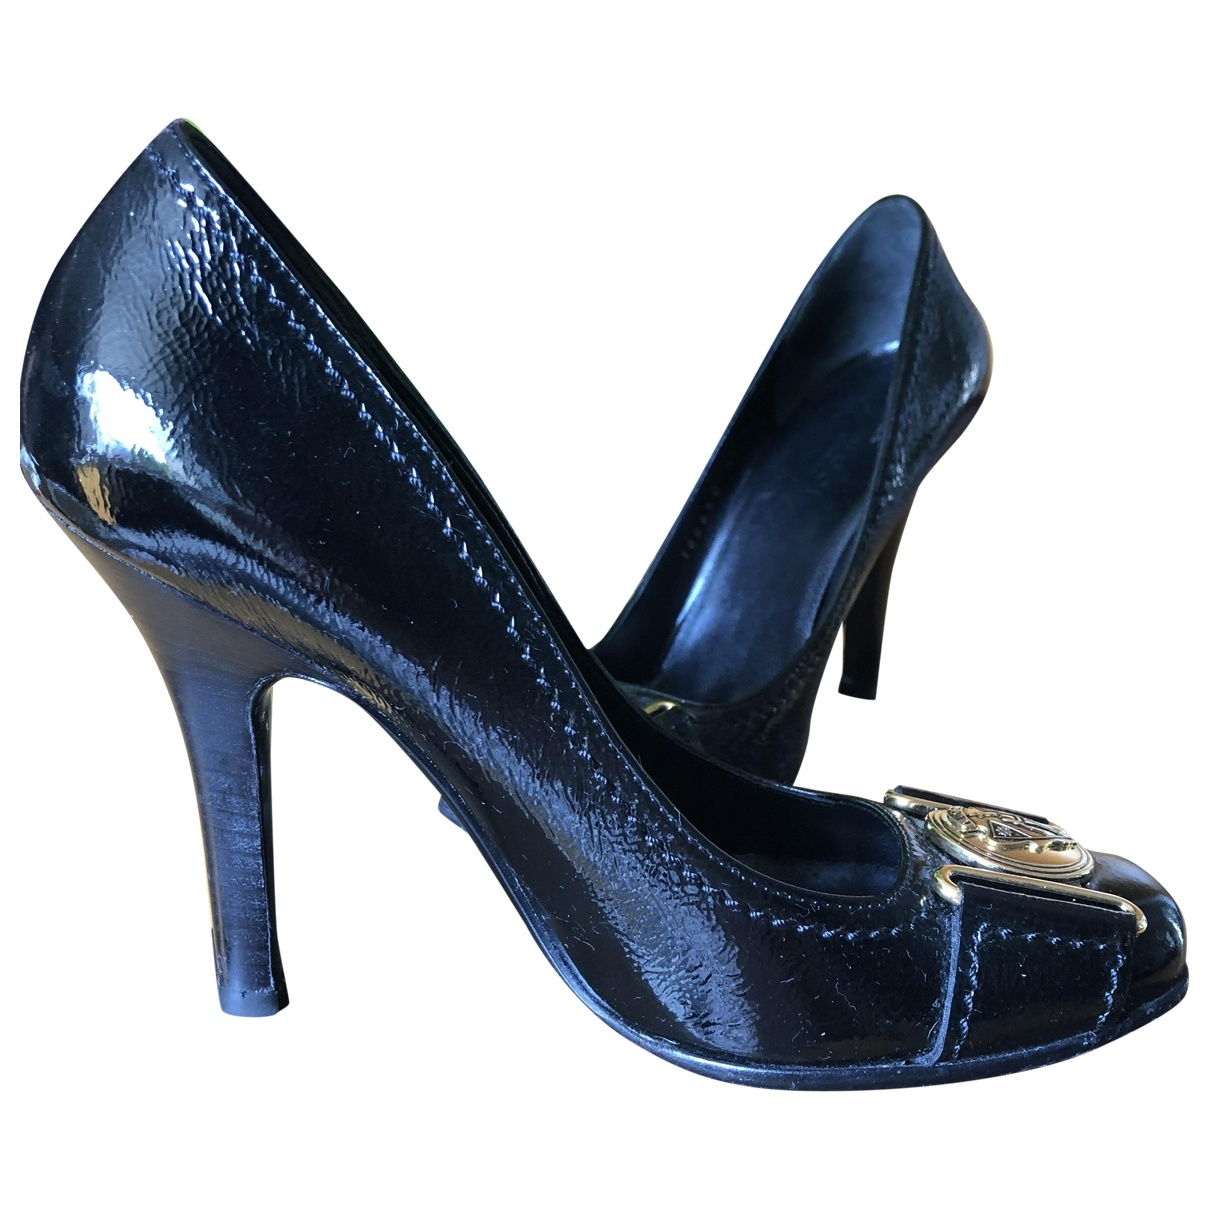 Gucci \N Black Patent leather Heels for Women 34 EU